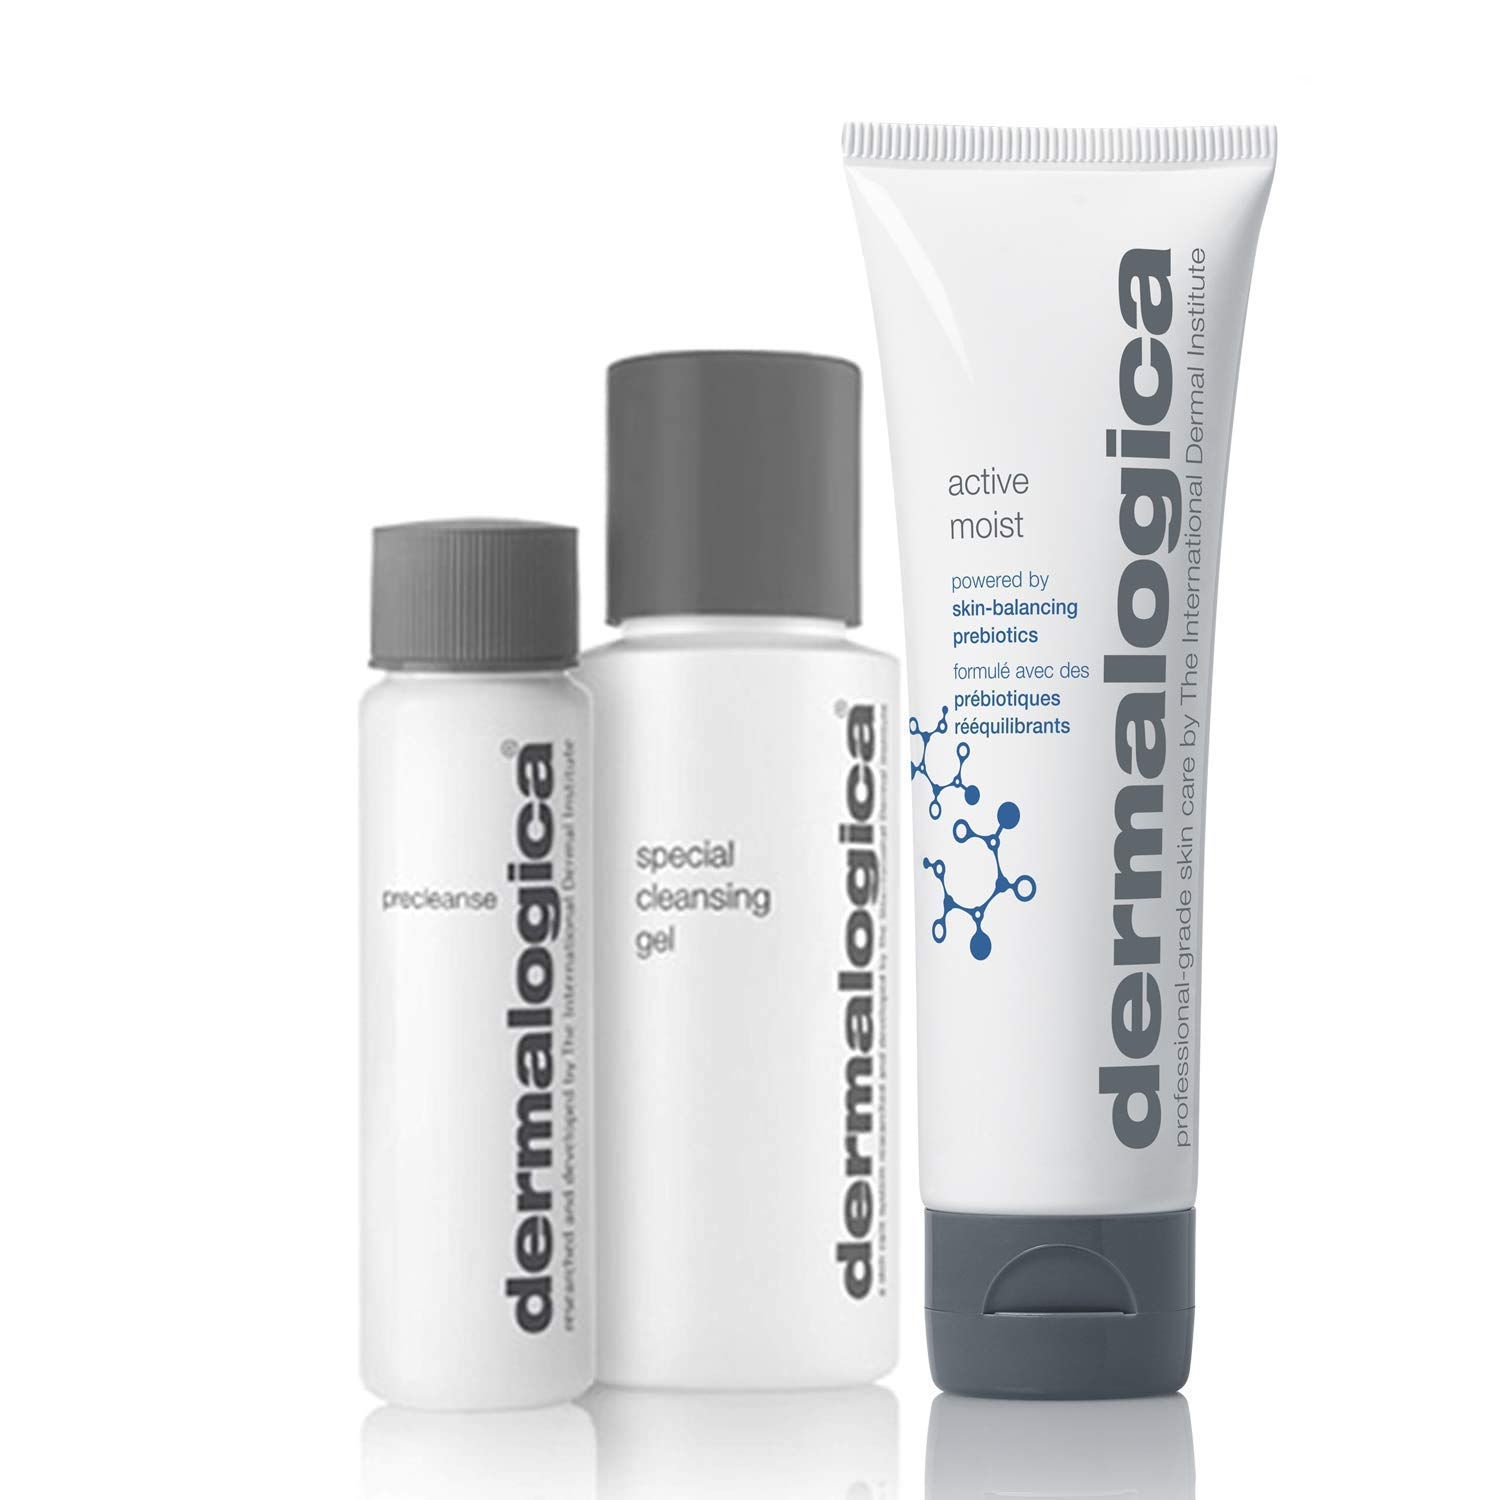 Dermalogica Back To Basics Set - Includes: Max 43% OFF Wash Face Super-cheap Precleanse